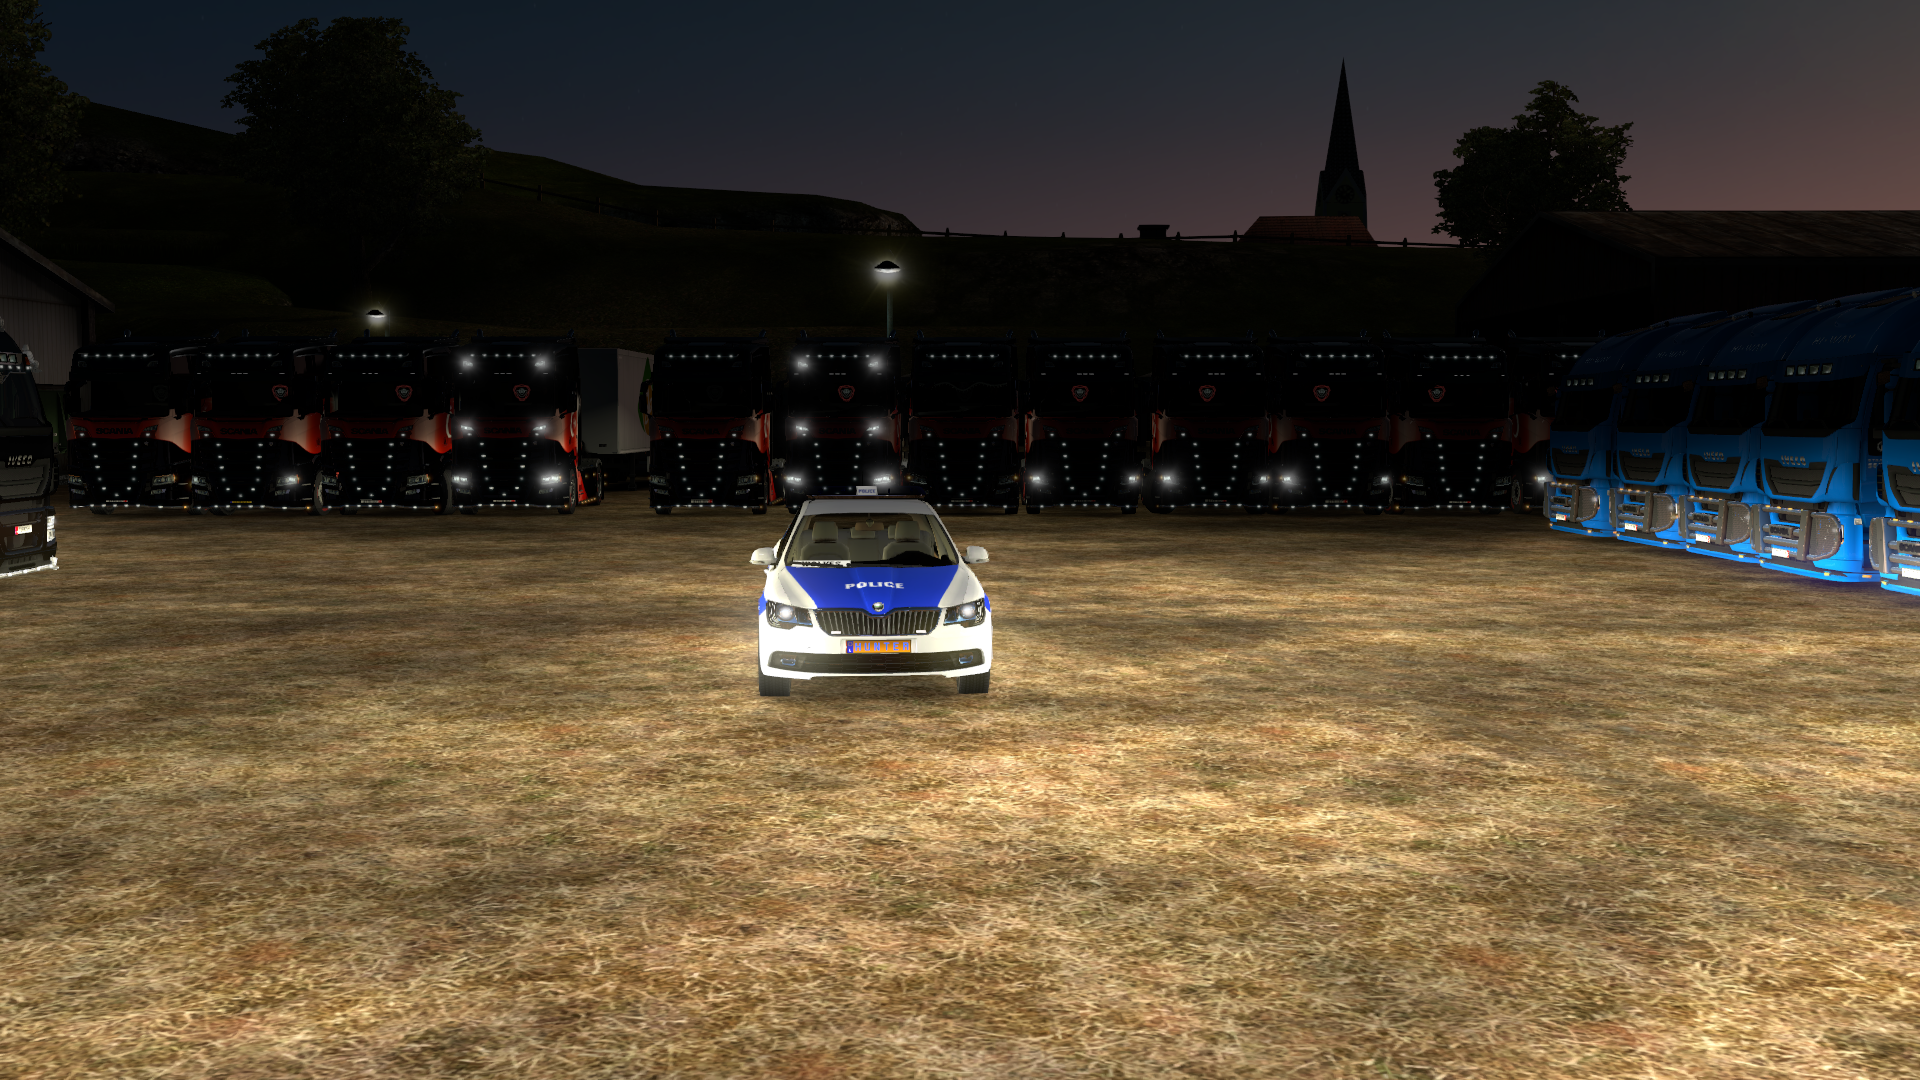 ets2_20190427_214006_00.png